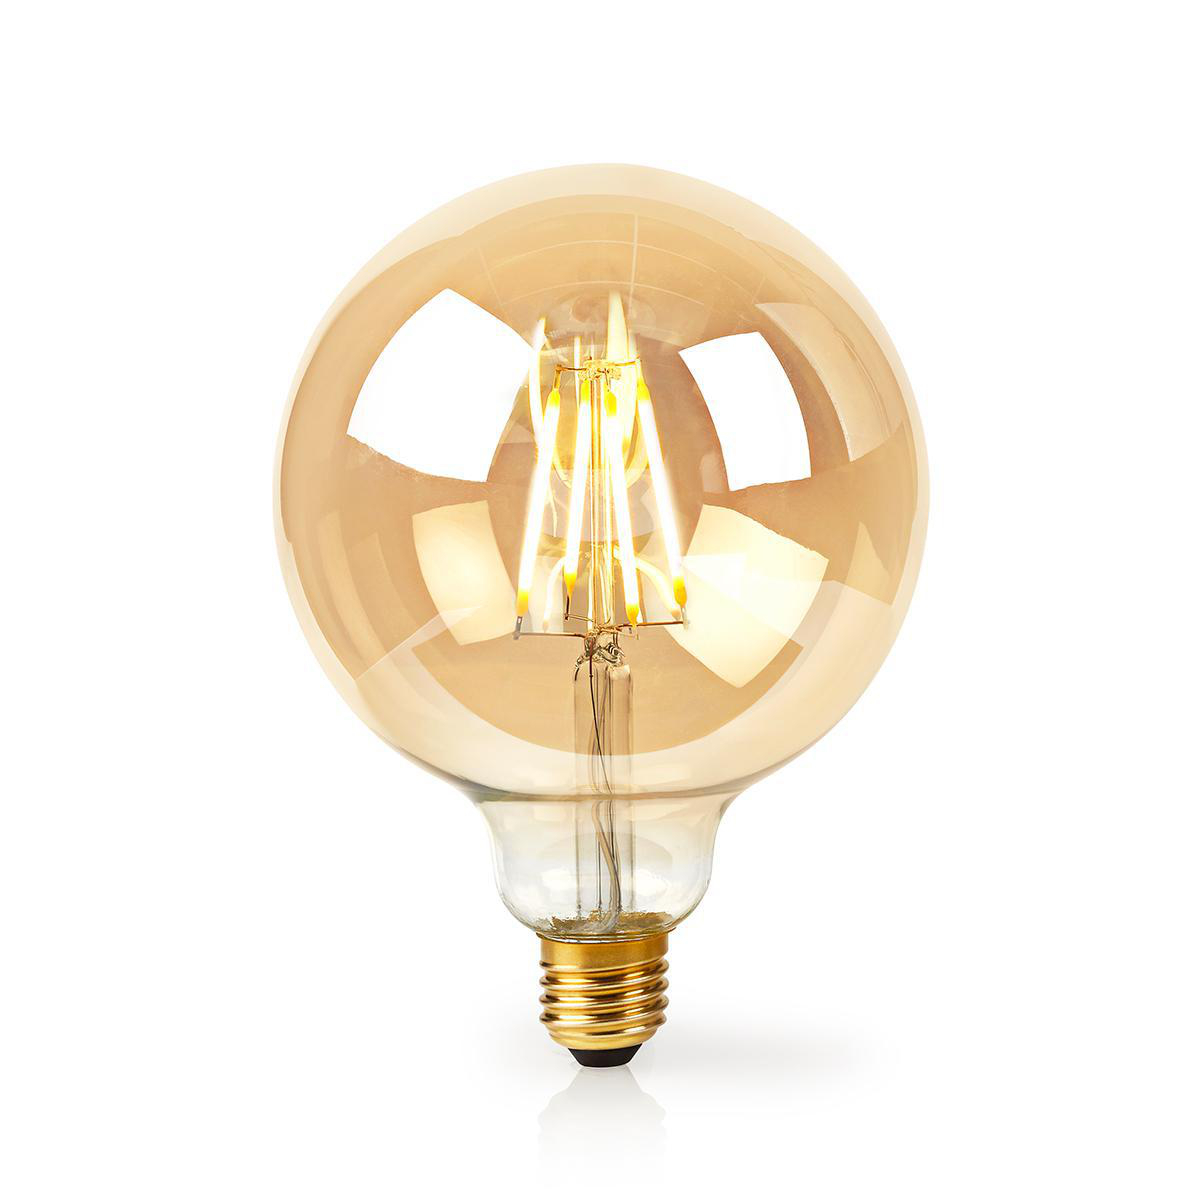 Slimme globe G125 filament lamp Wifi - E27 - 5 watt - warm wit